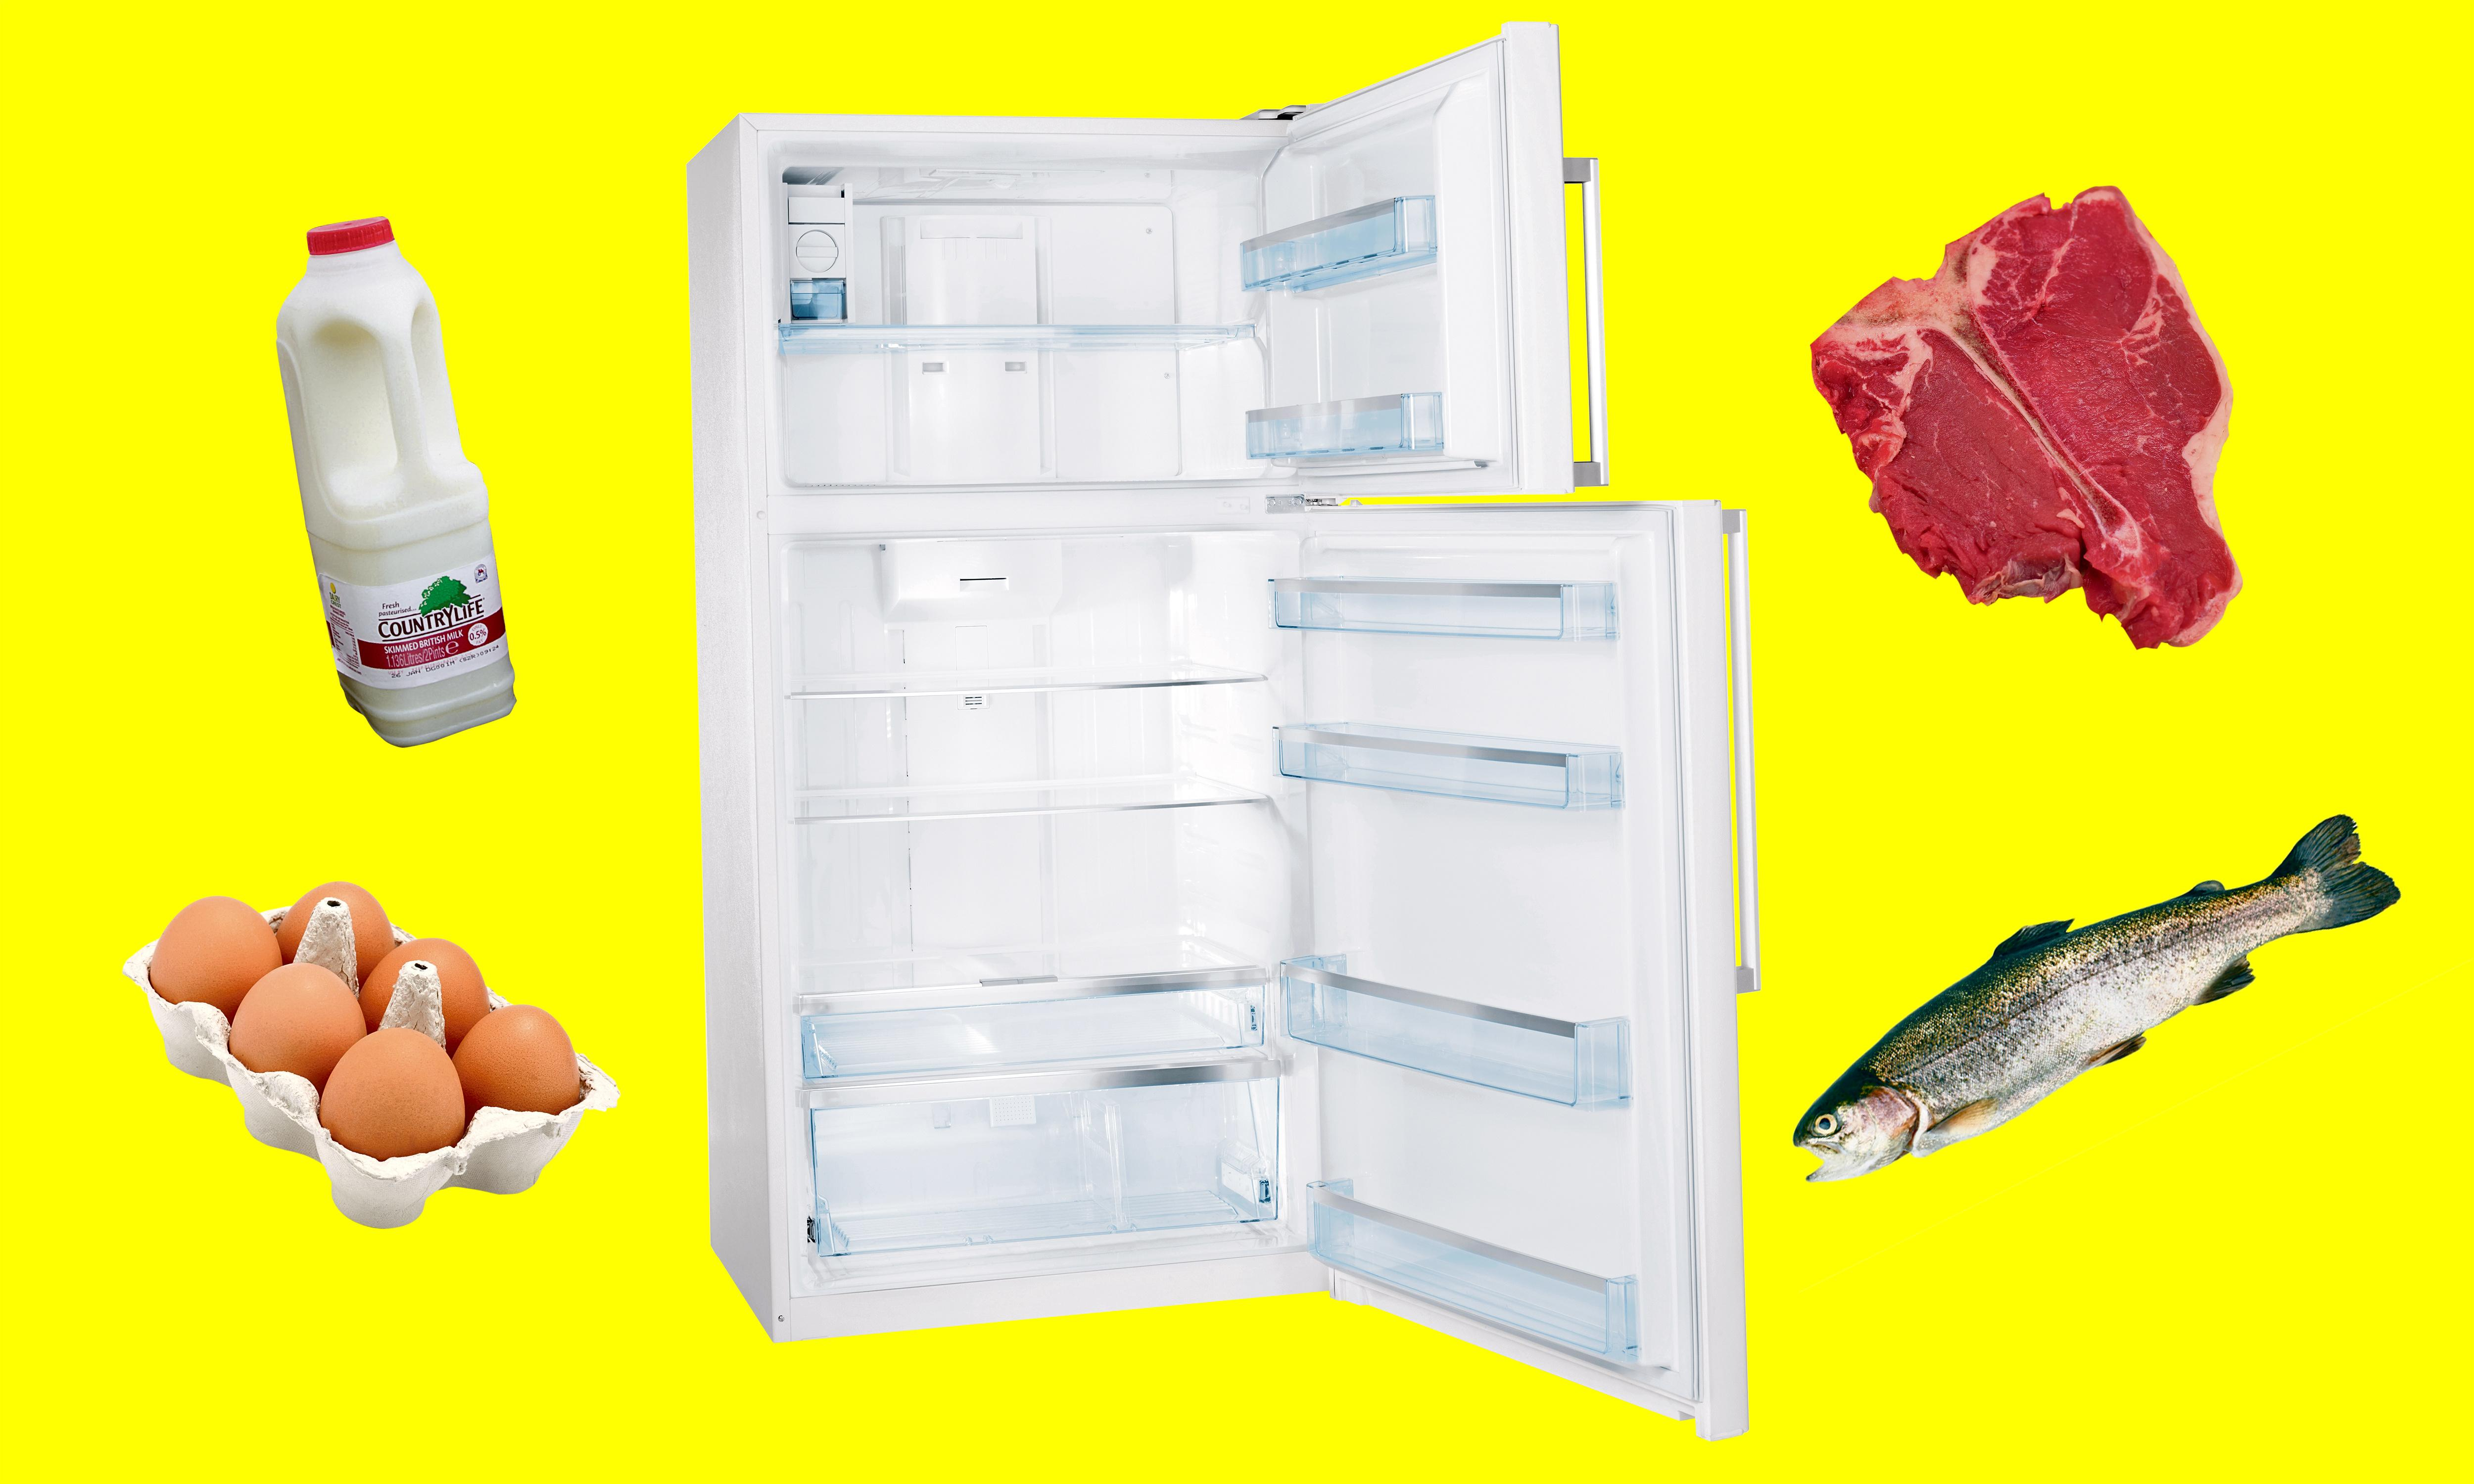 Chill out! The 10 rules for a perfect fridge – from egg storage to deep cleaning